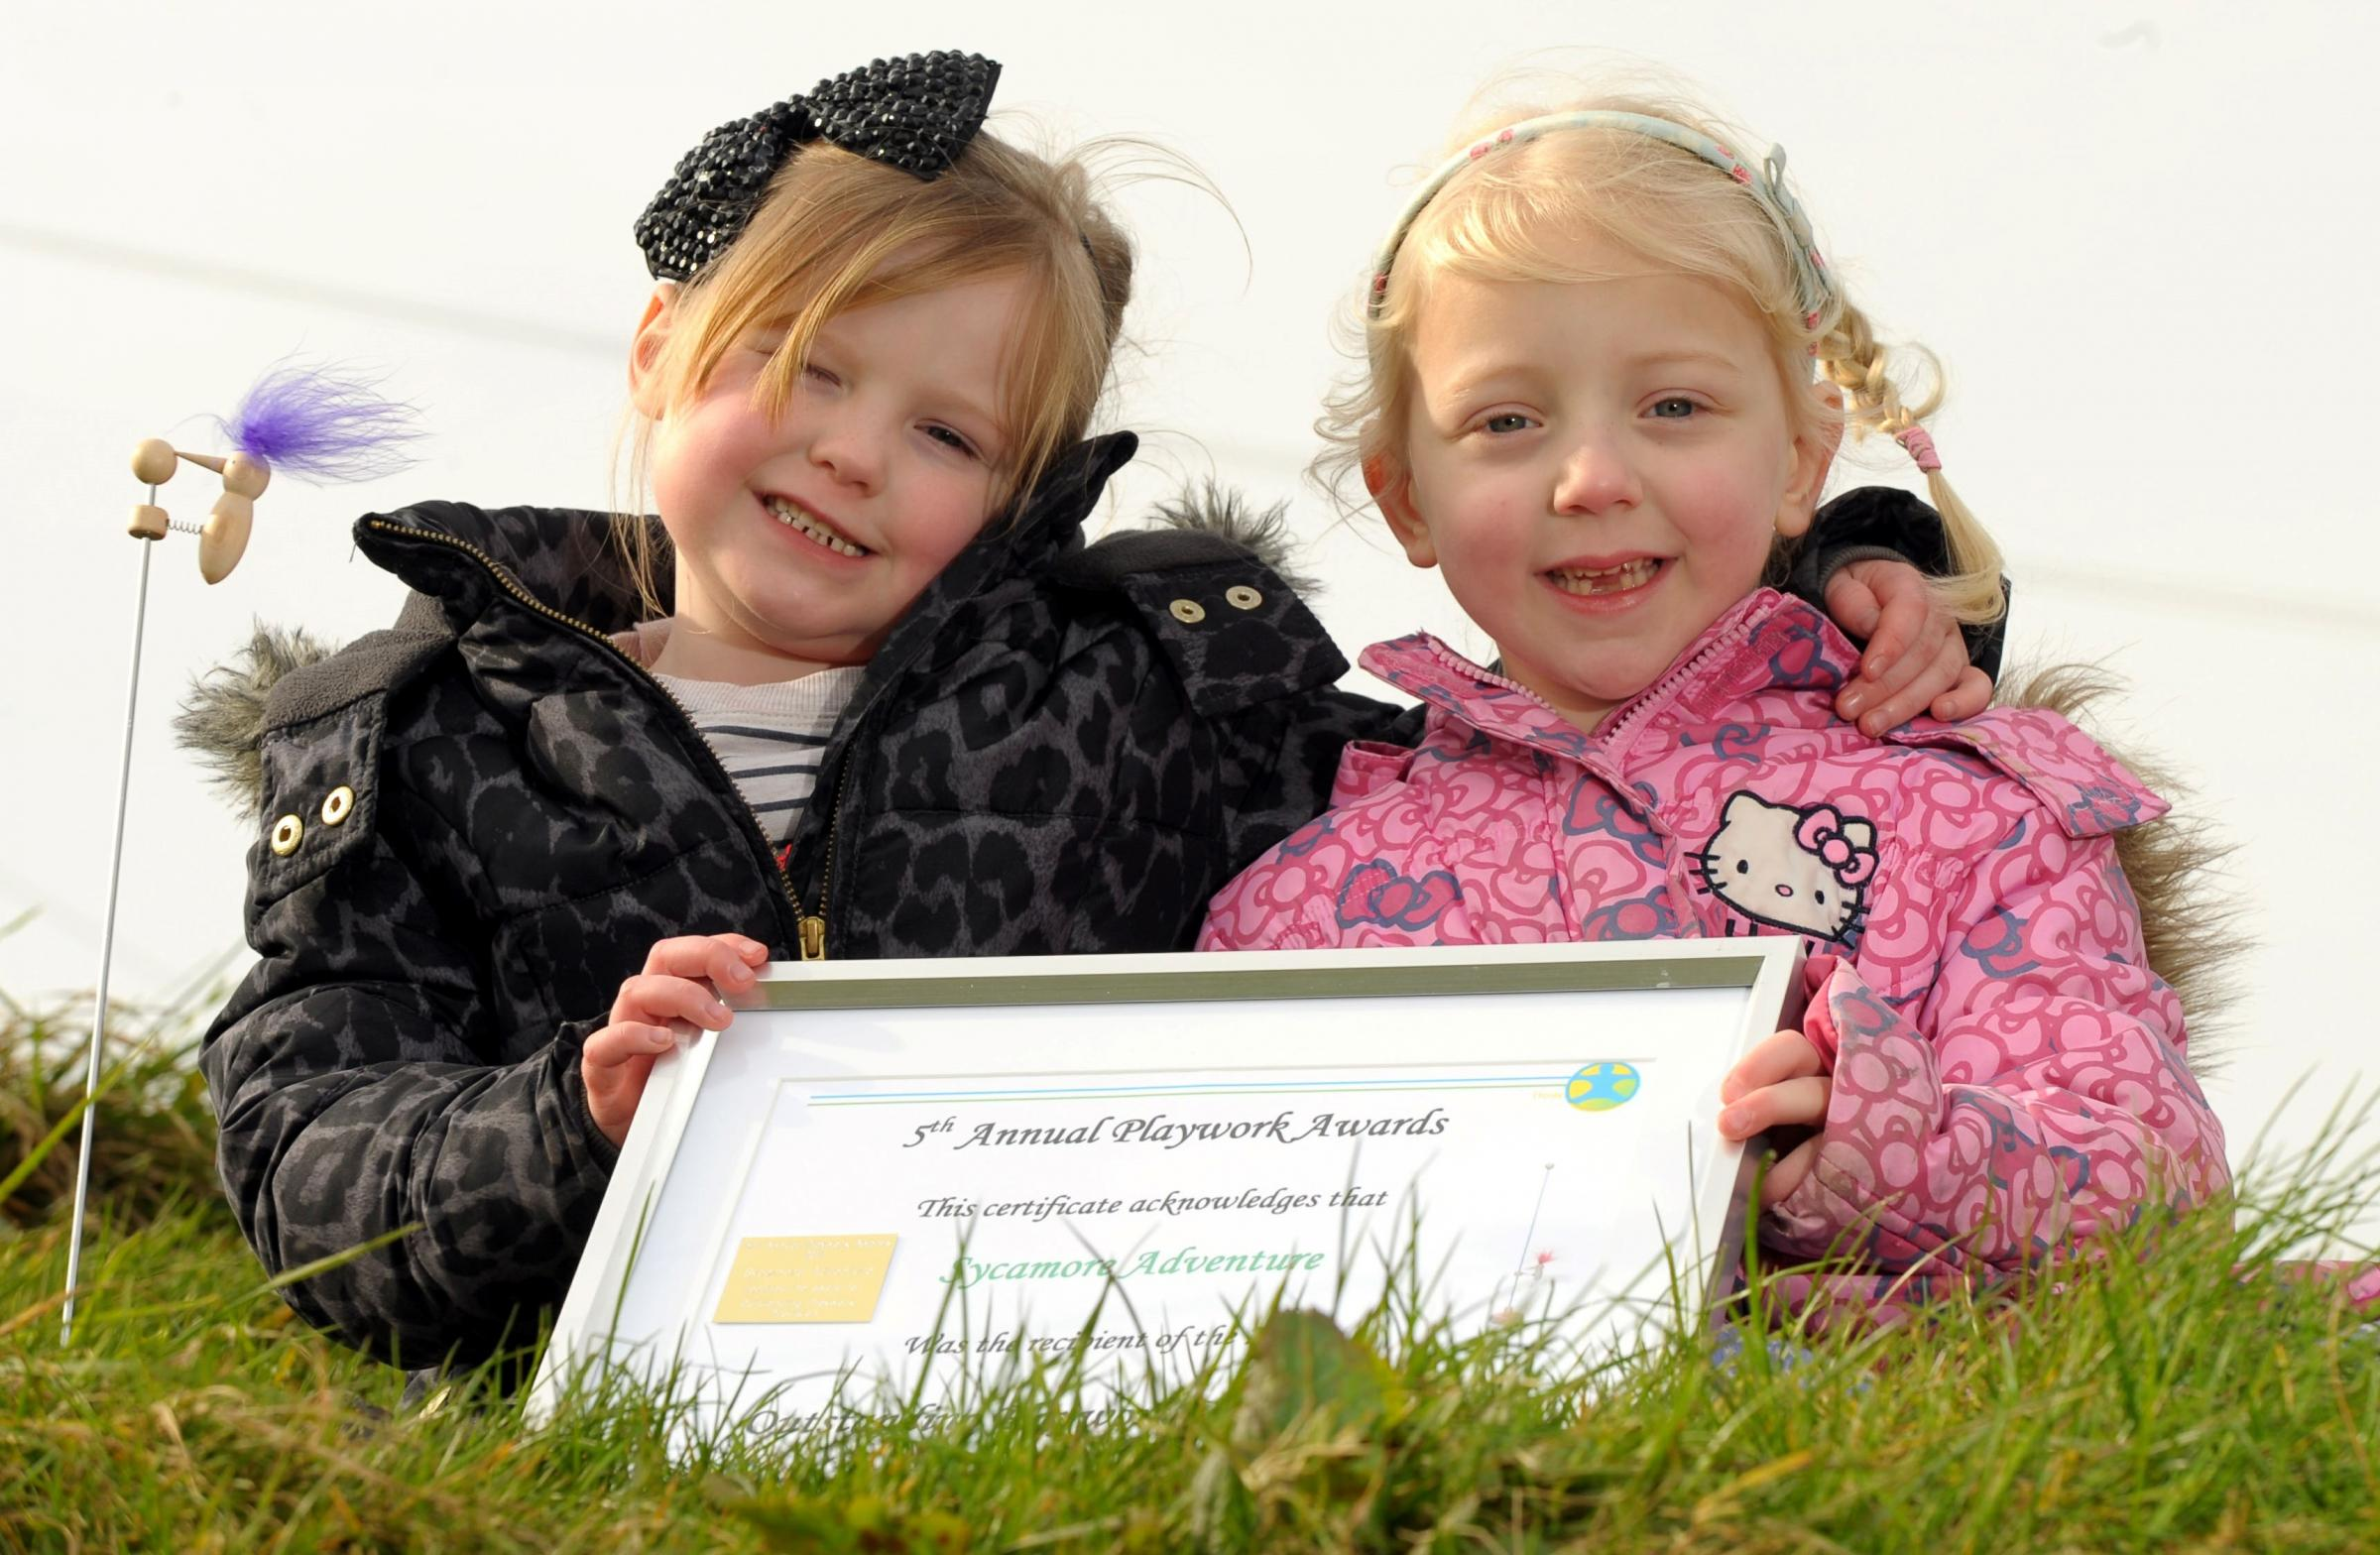 Millie-Jayne Jones, aged 5, left, and Abigail Neal, aged 5, right, celebrating the latest award for the Sycamore Adventure play centre 111422RS